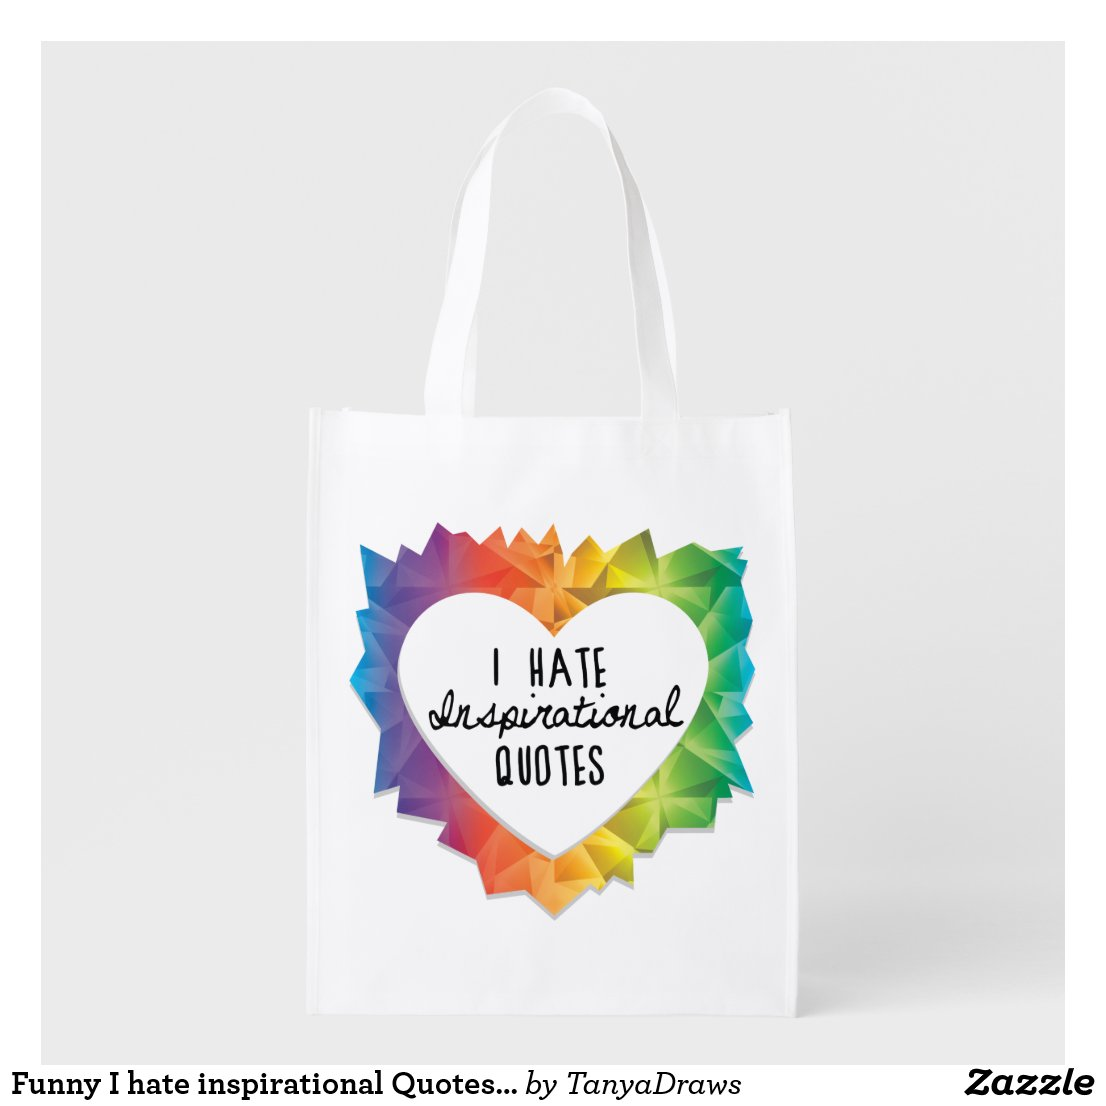 Funny I hate inspirational Quotes Text Reusable Grocery Bag